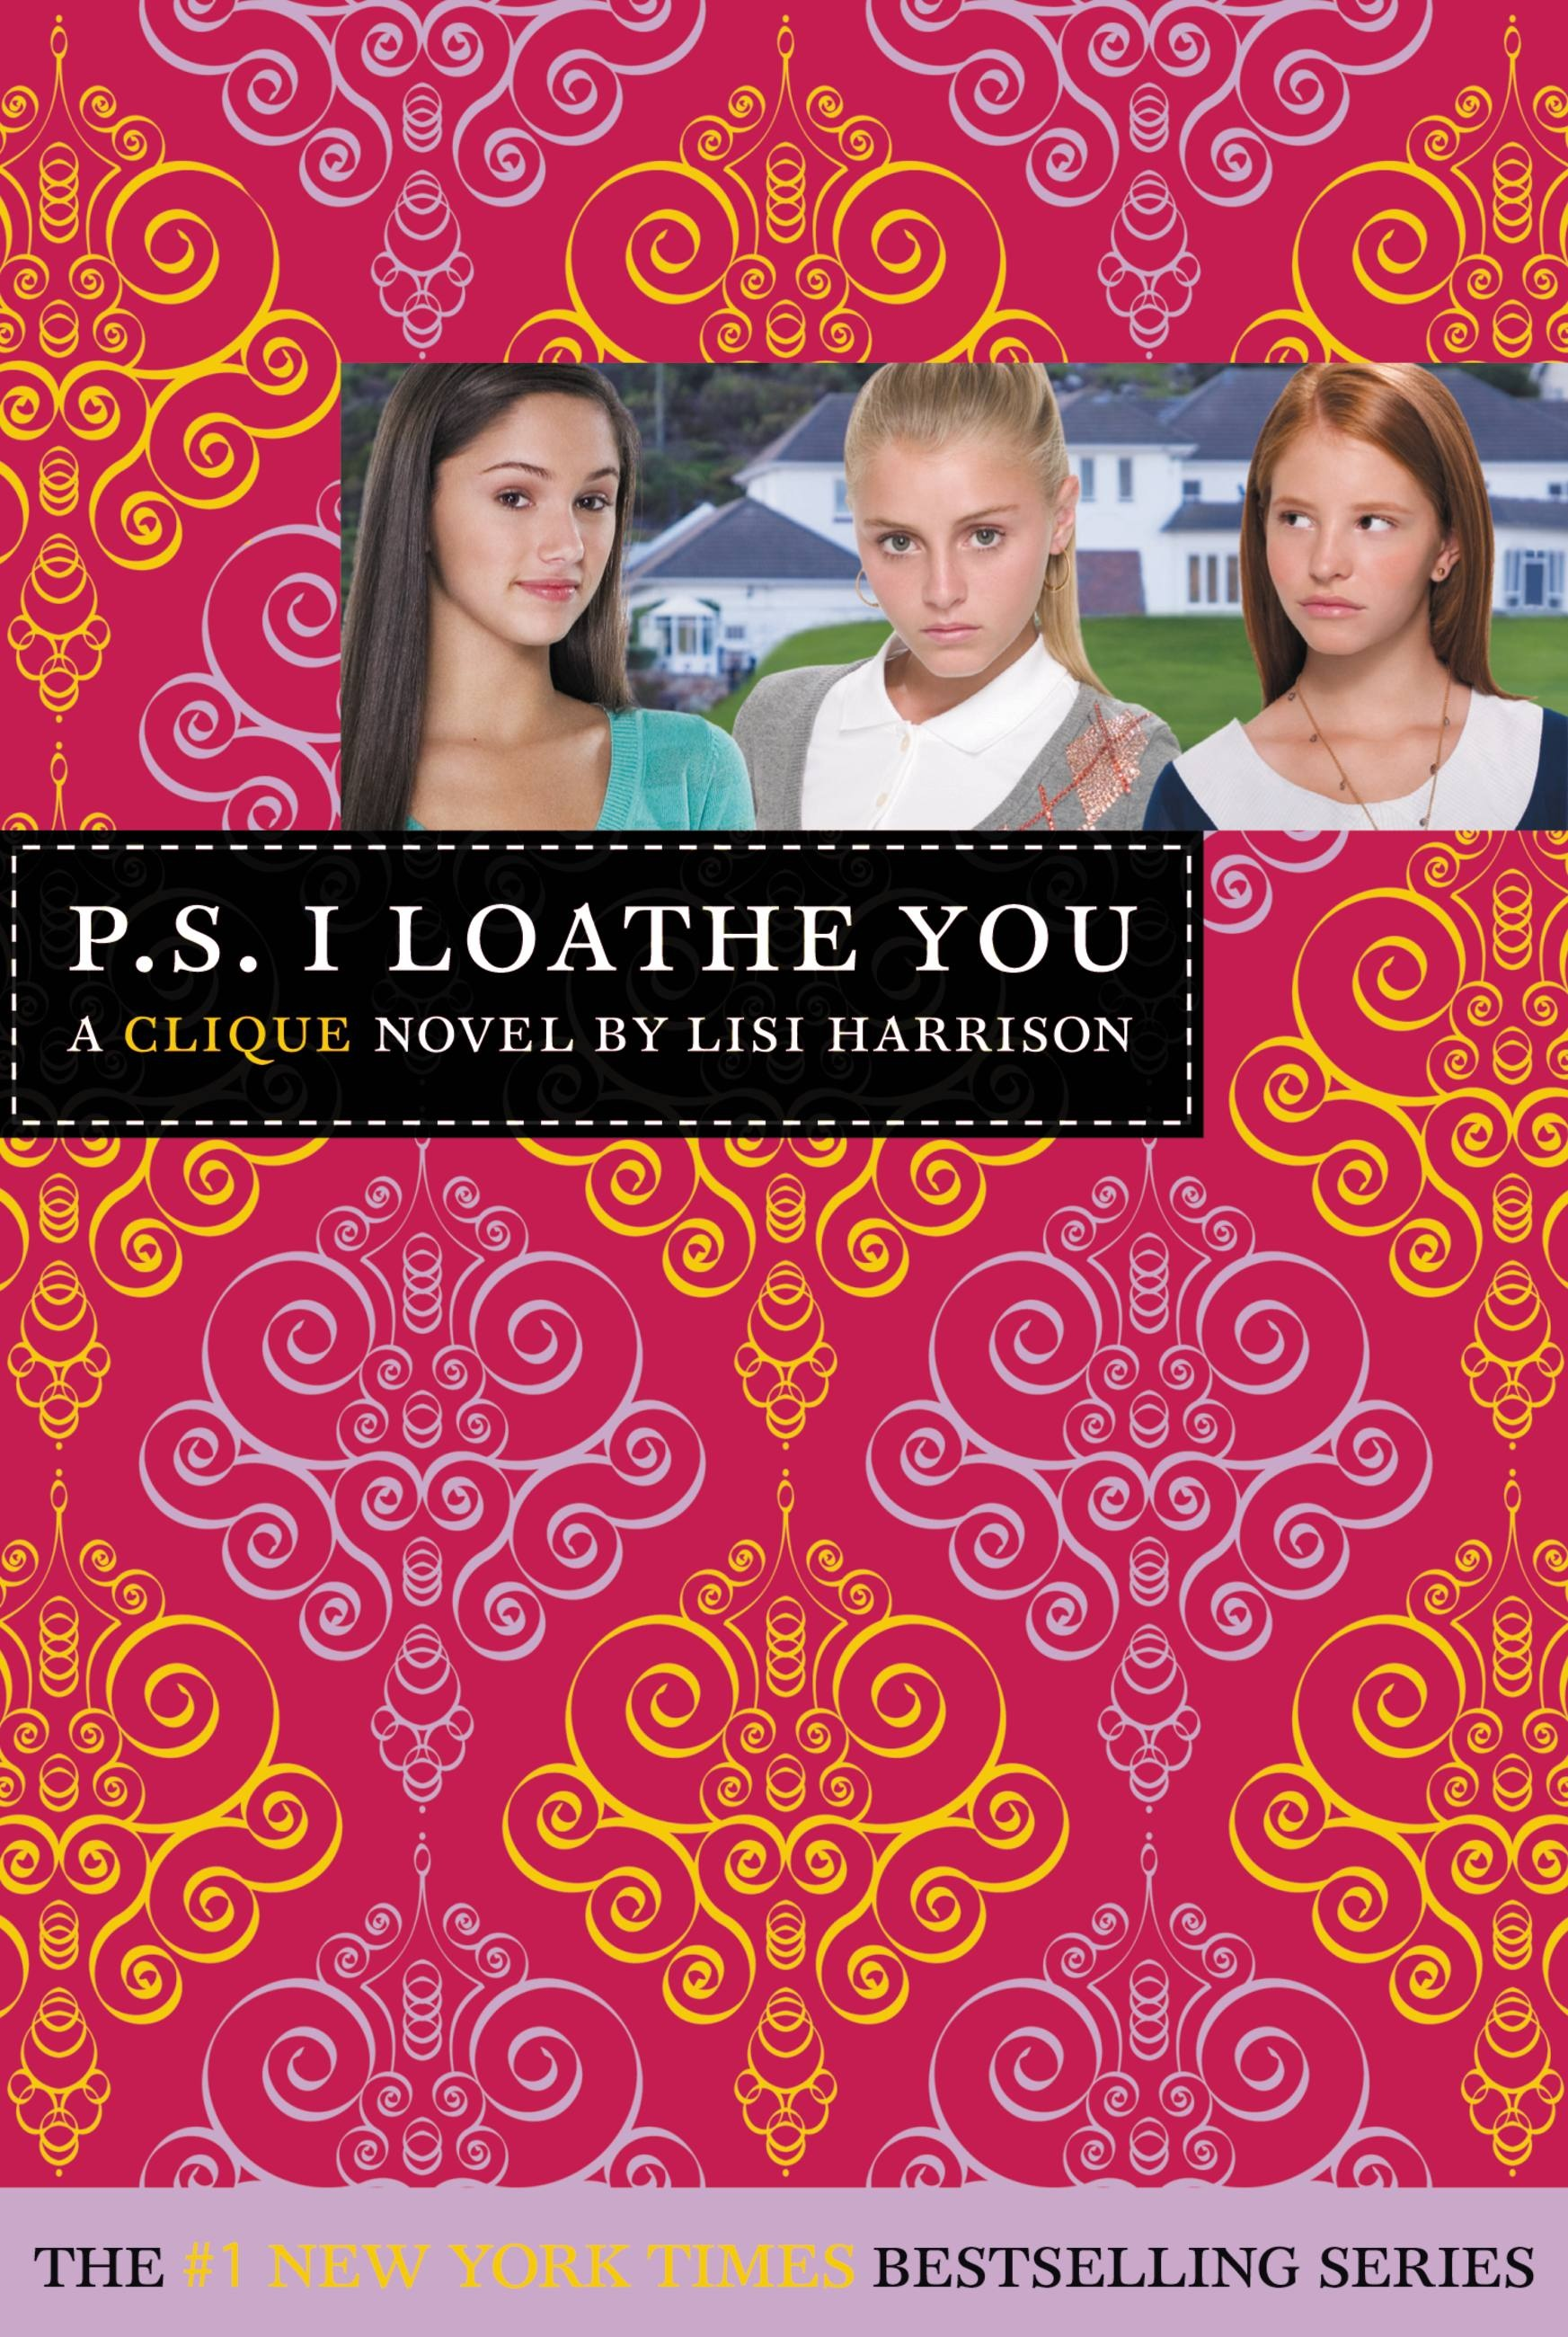 The Clique #10: P.S. I Loathe You by Lisi Harrison ...